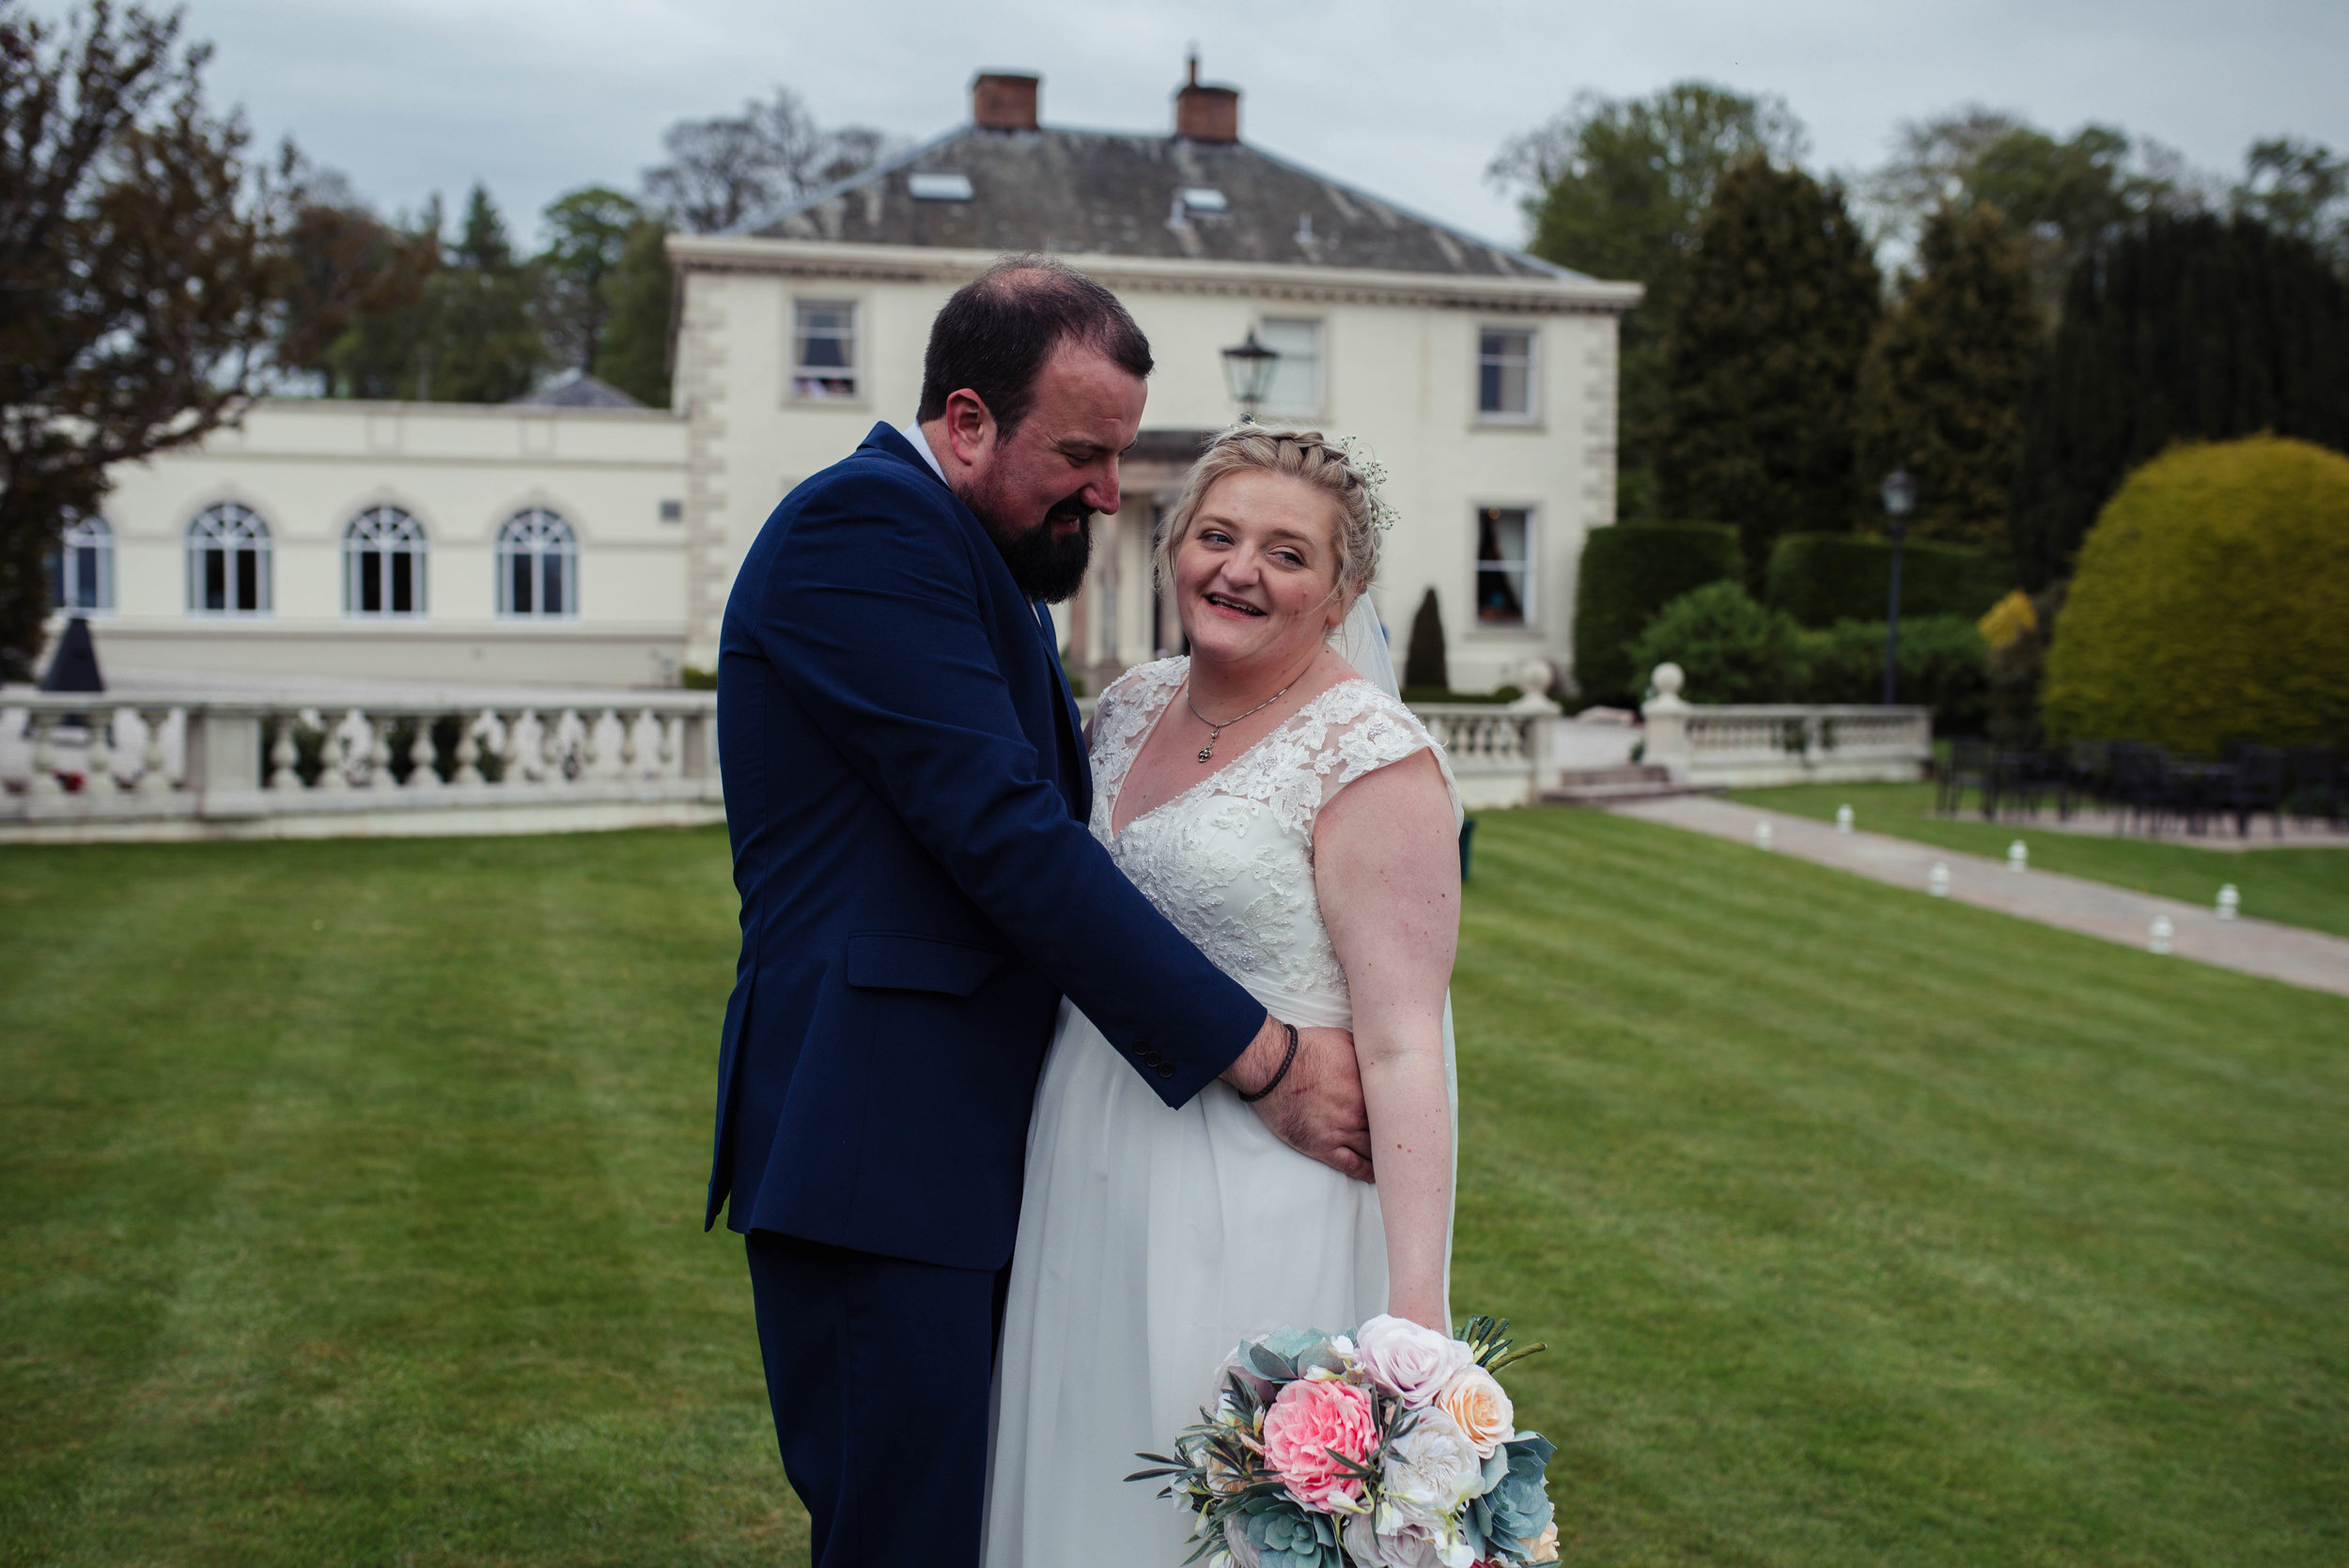 The bride and groom stand to have their photo taken outside the roundthorn country house